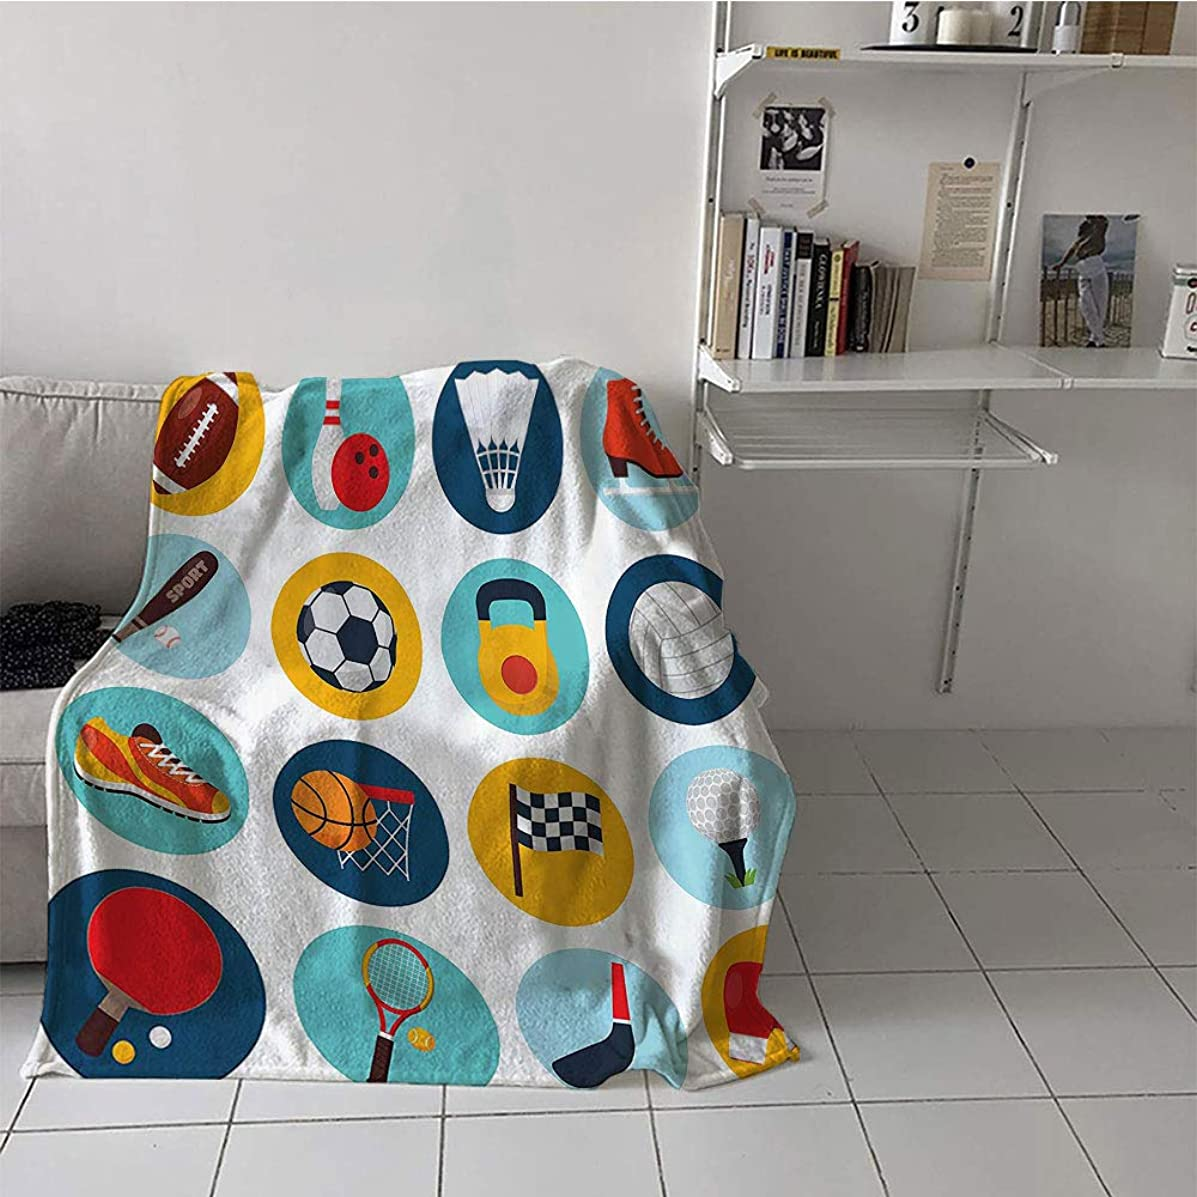 Children's Blanket Chair Print Summer Quilt Comforter (60 by 80 Inch,Sports Decor Collection,Sport Icons with Soccer Golf Table Tennis Balls Gloves Skate Shoes Sporty Image,Teal Blue Orange Red